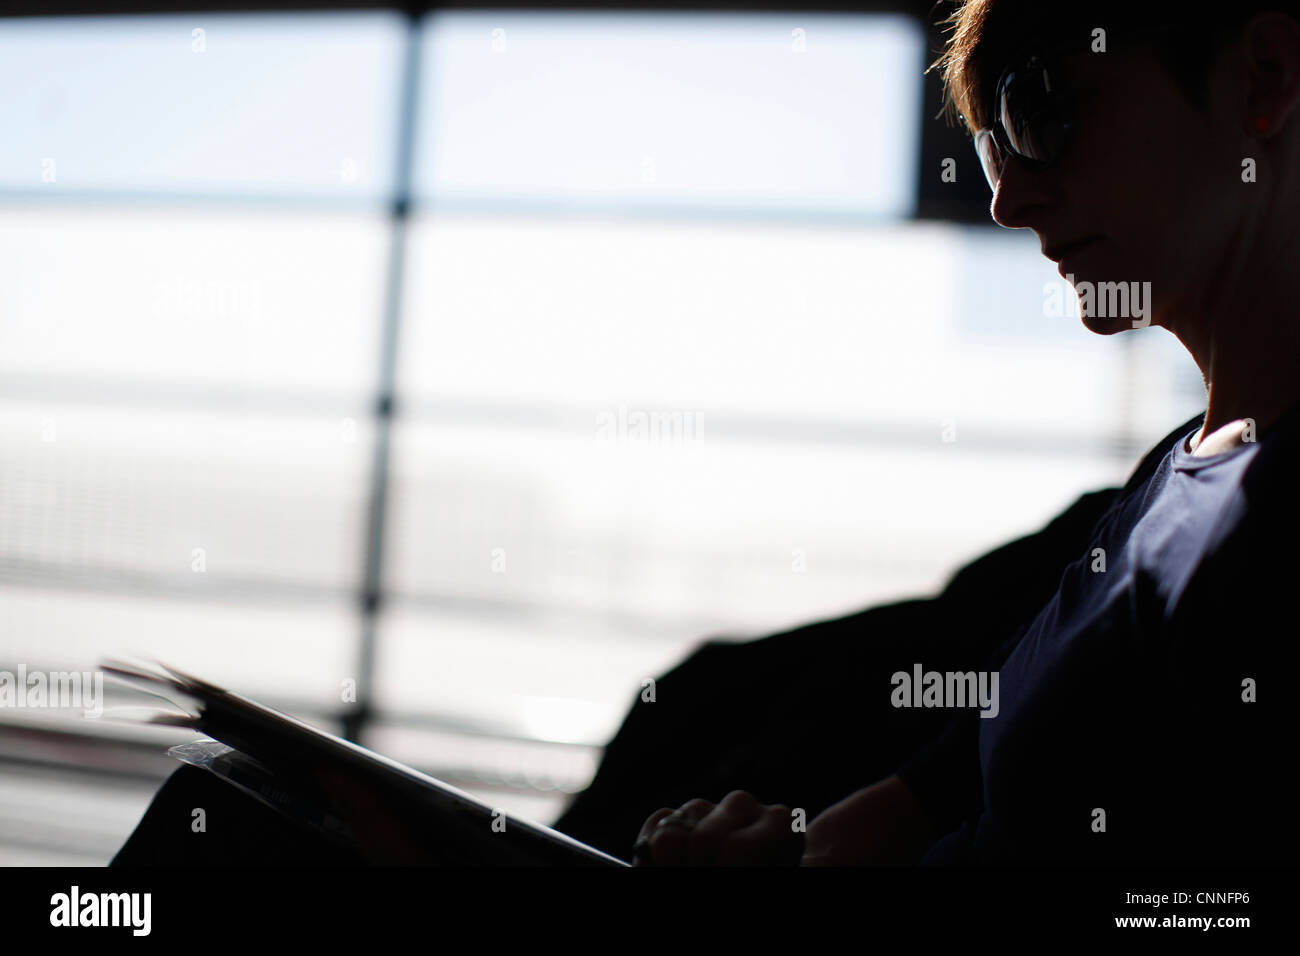 Woman reading magazine in airport - Stock Image